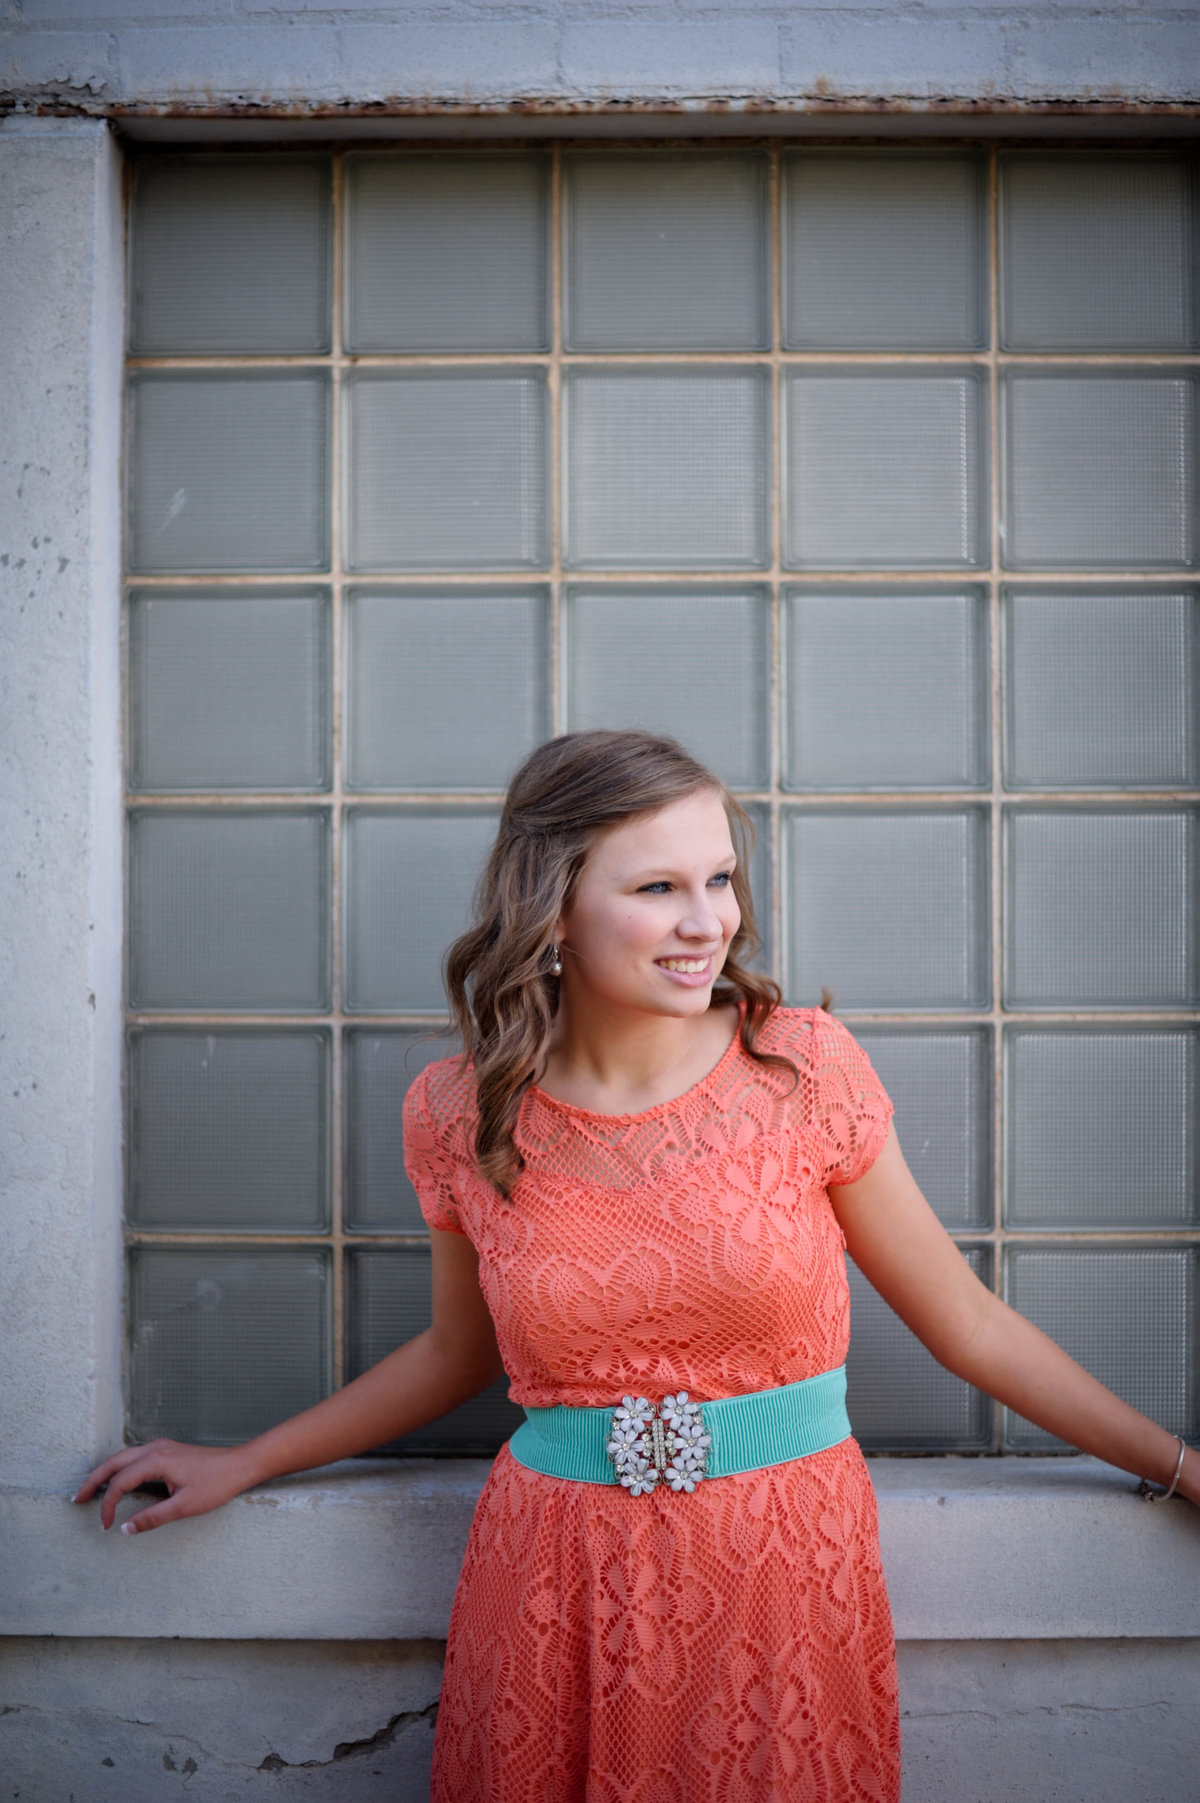 leah'sseniorpictures,april11,2014-5343